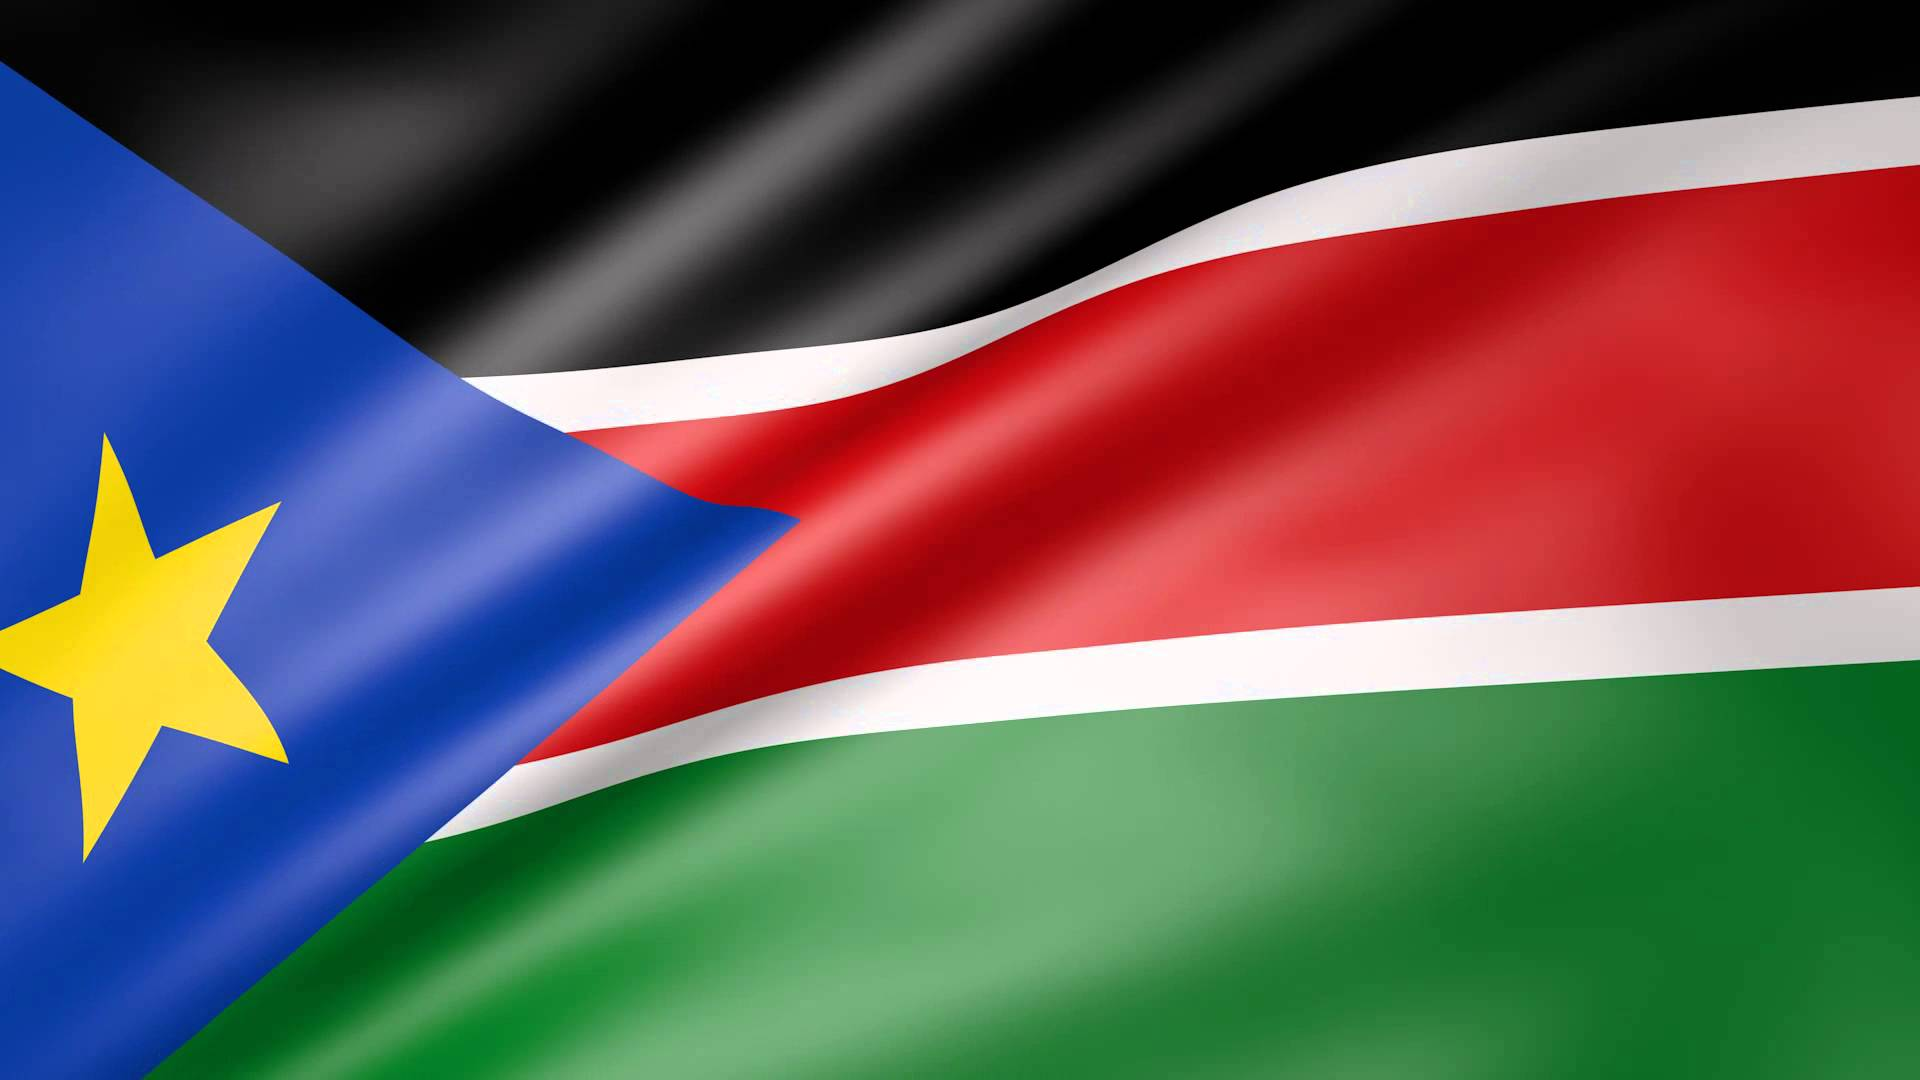 Flag of South Sudan Wikipedia